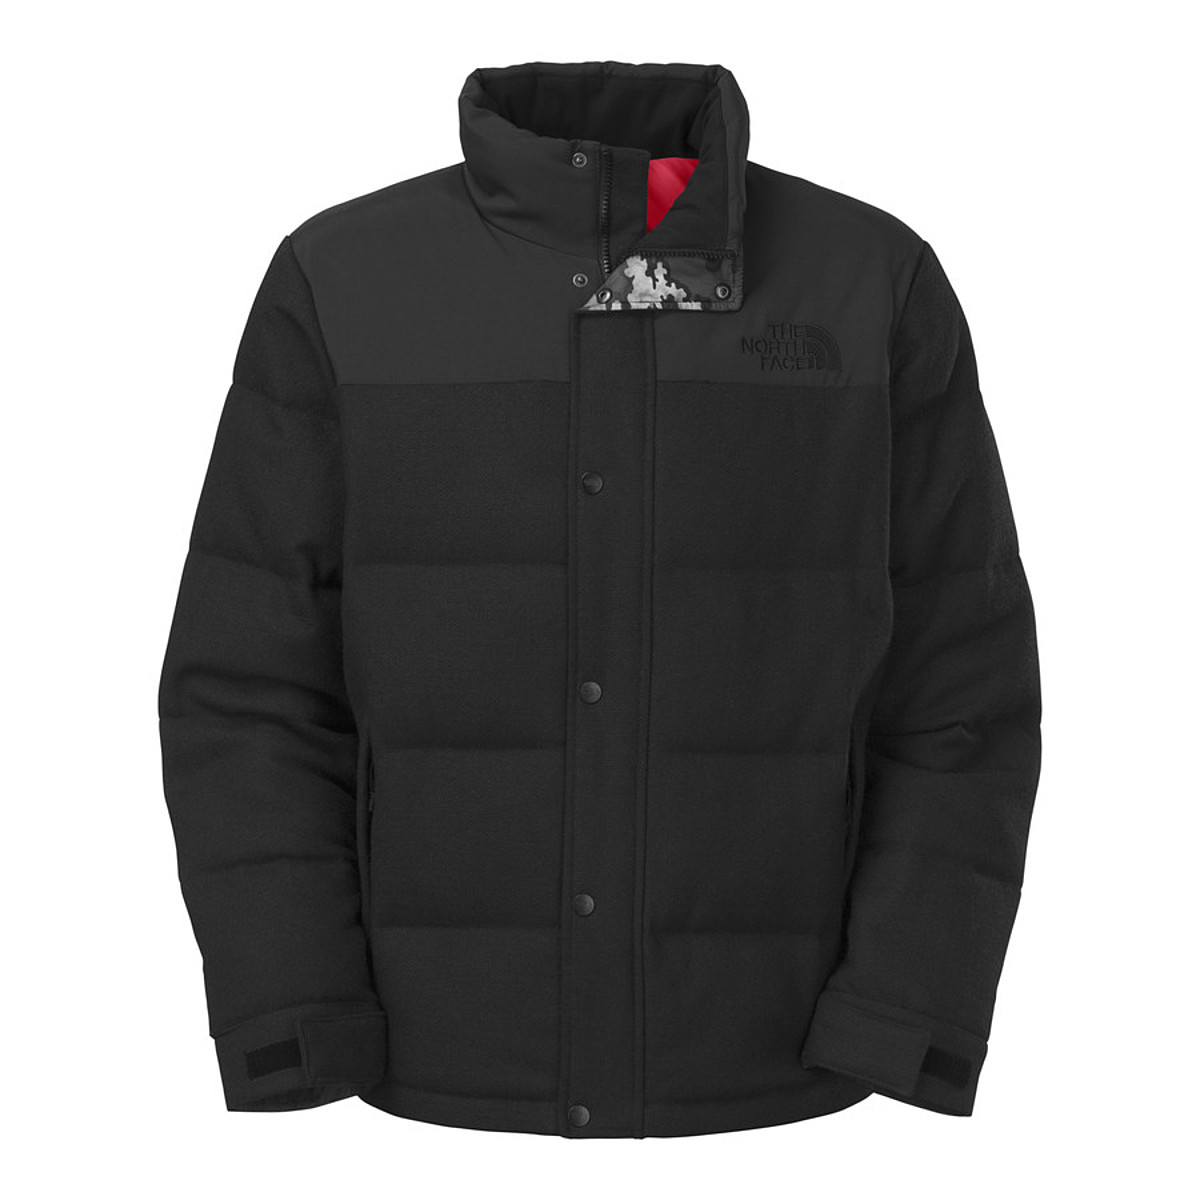 cfbdde1ea5 The North Face Nuptse Jacket Reviews - Trailspace